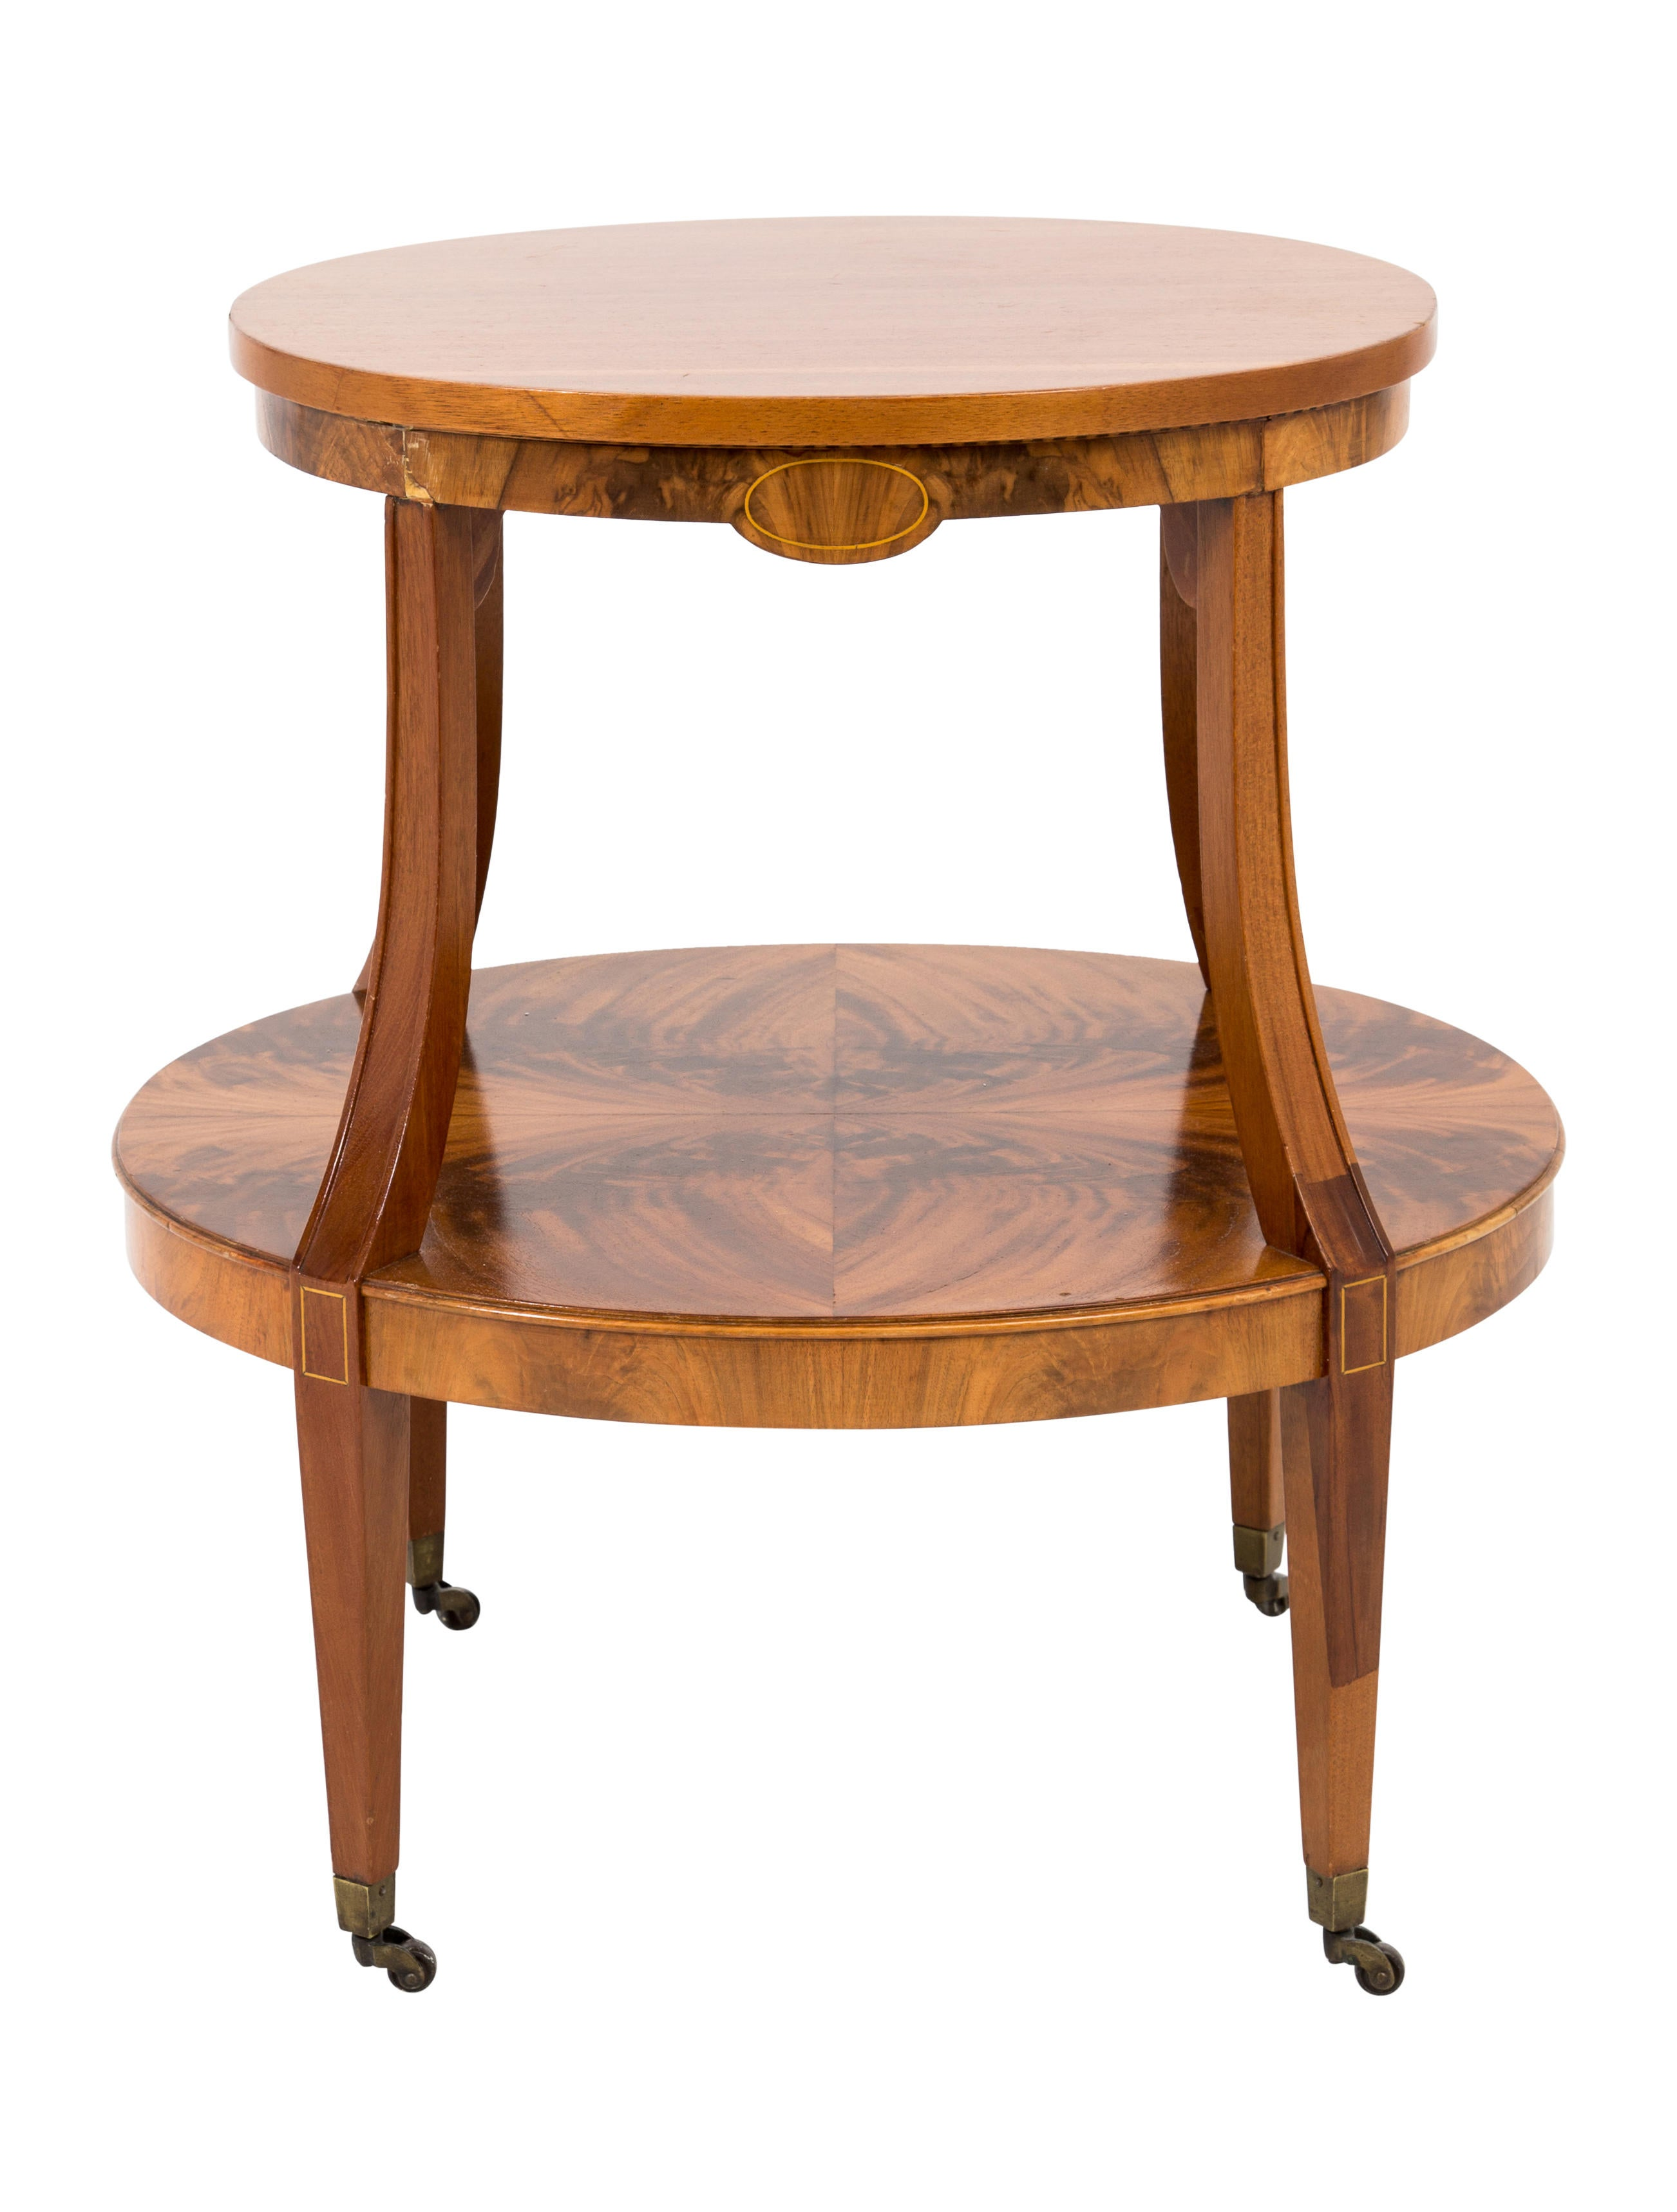 Biedermeier Style End Table Furniture Table20173 The Realreal